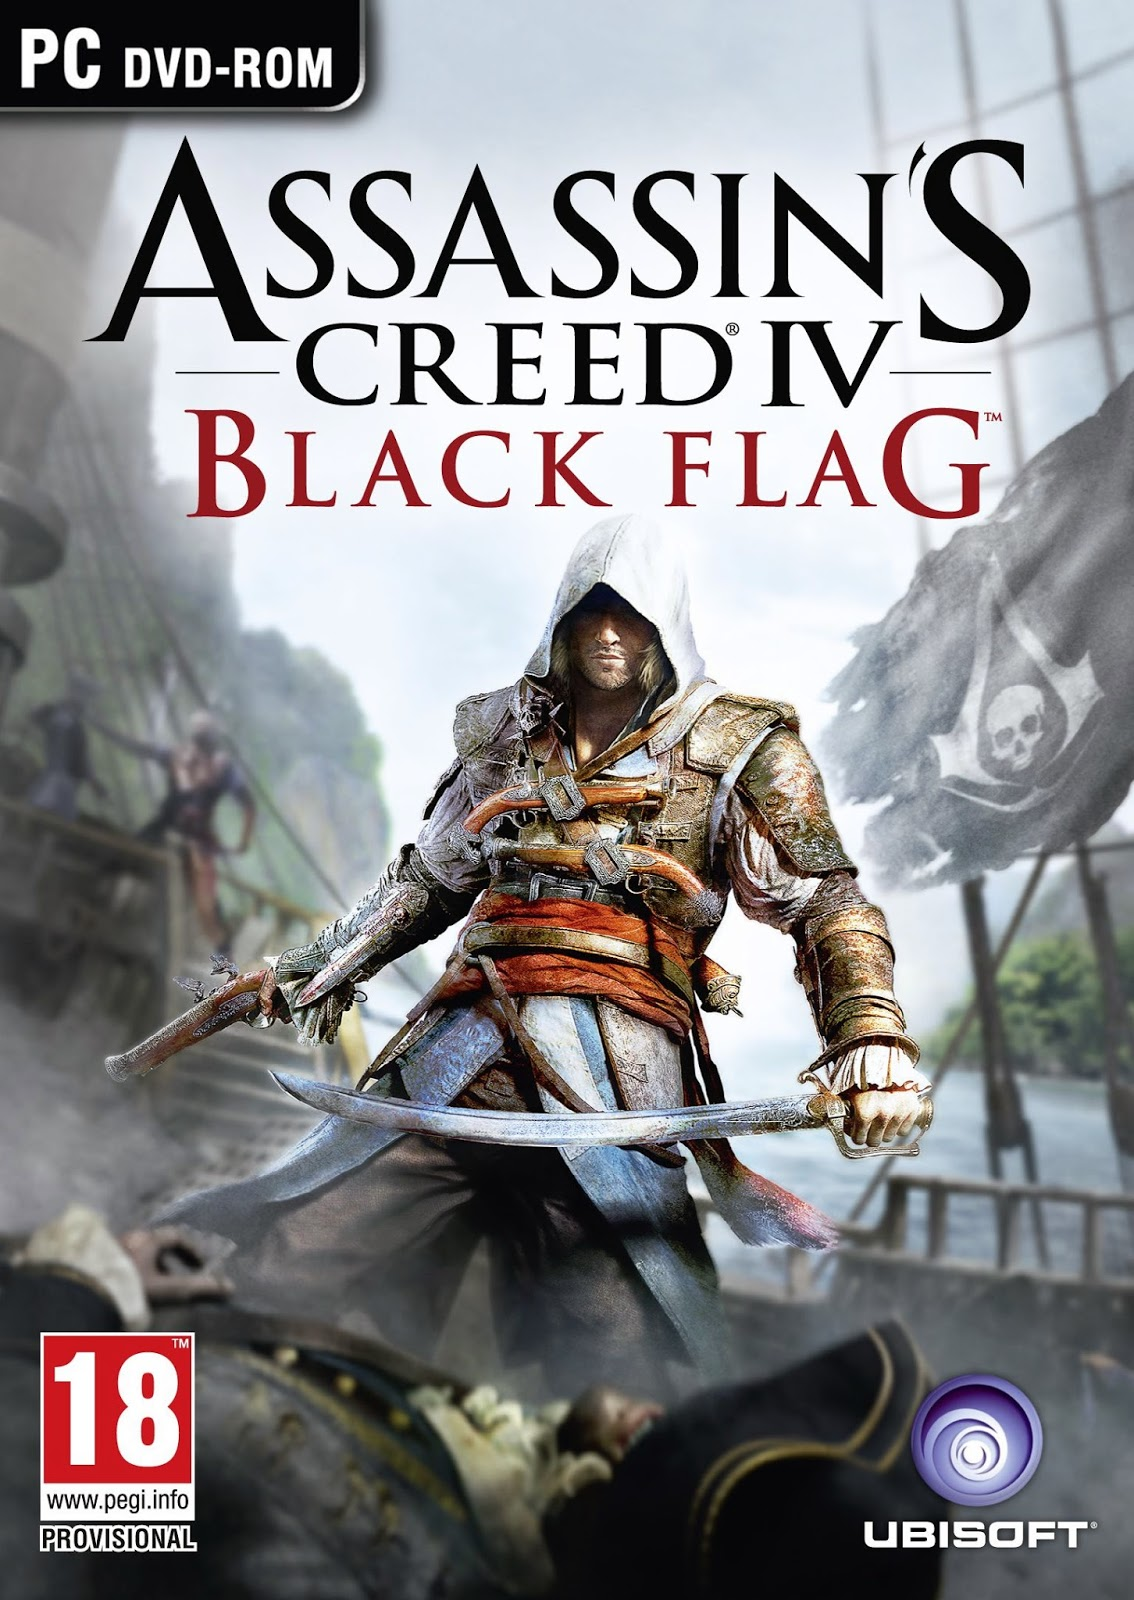 Assassins Creed IV: Black Flag PC   Completo BR